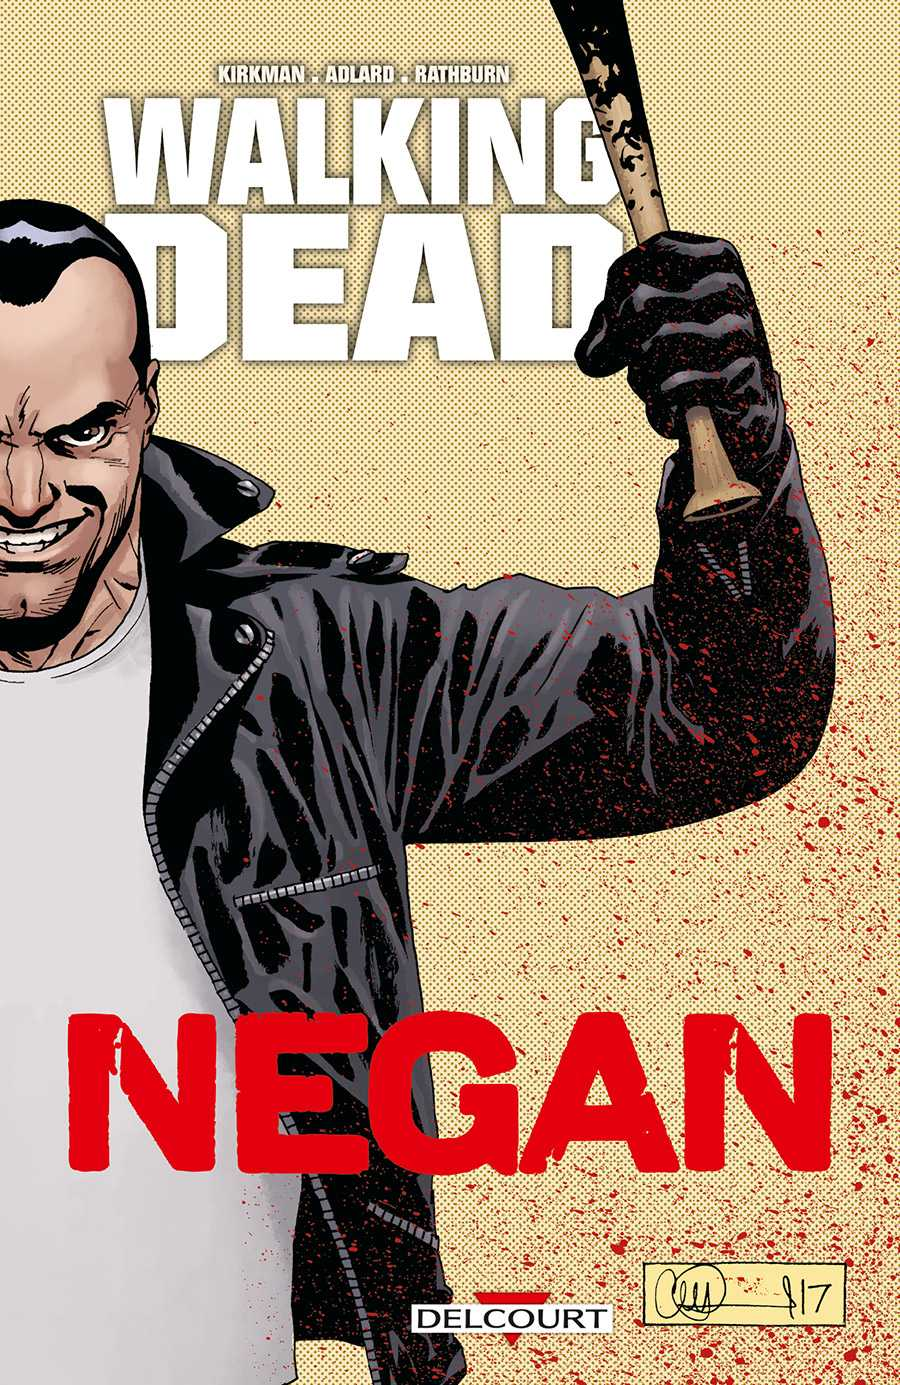 Walking Dead, Negan roi de la batte